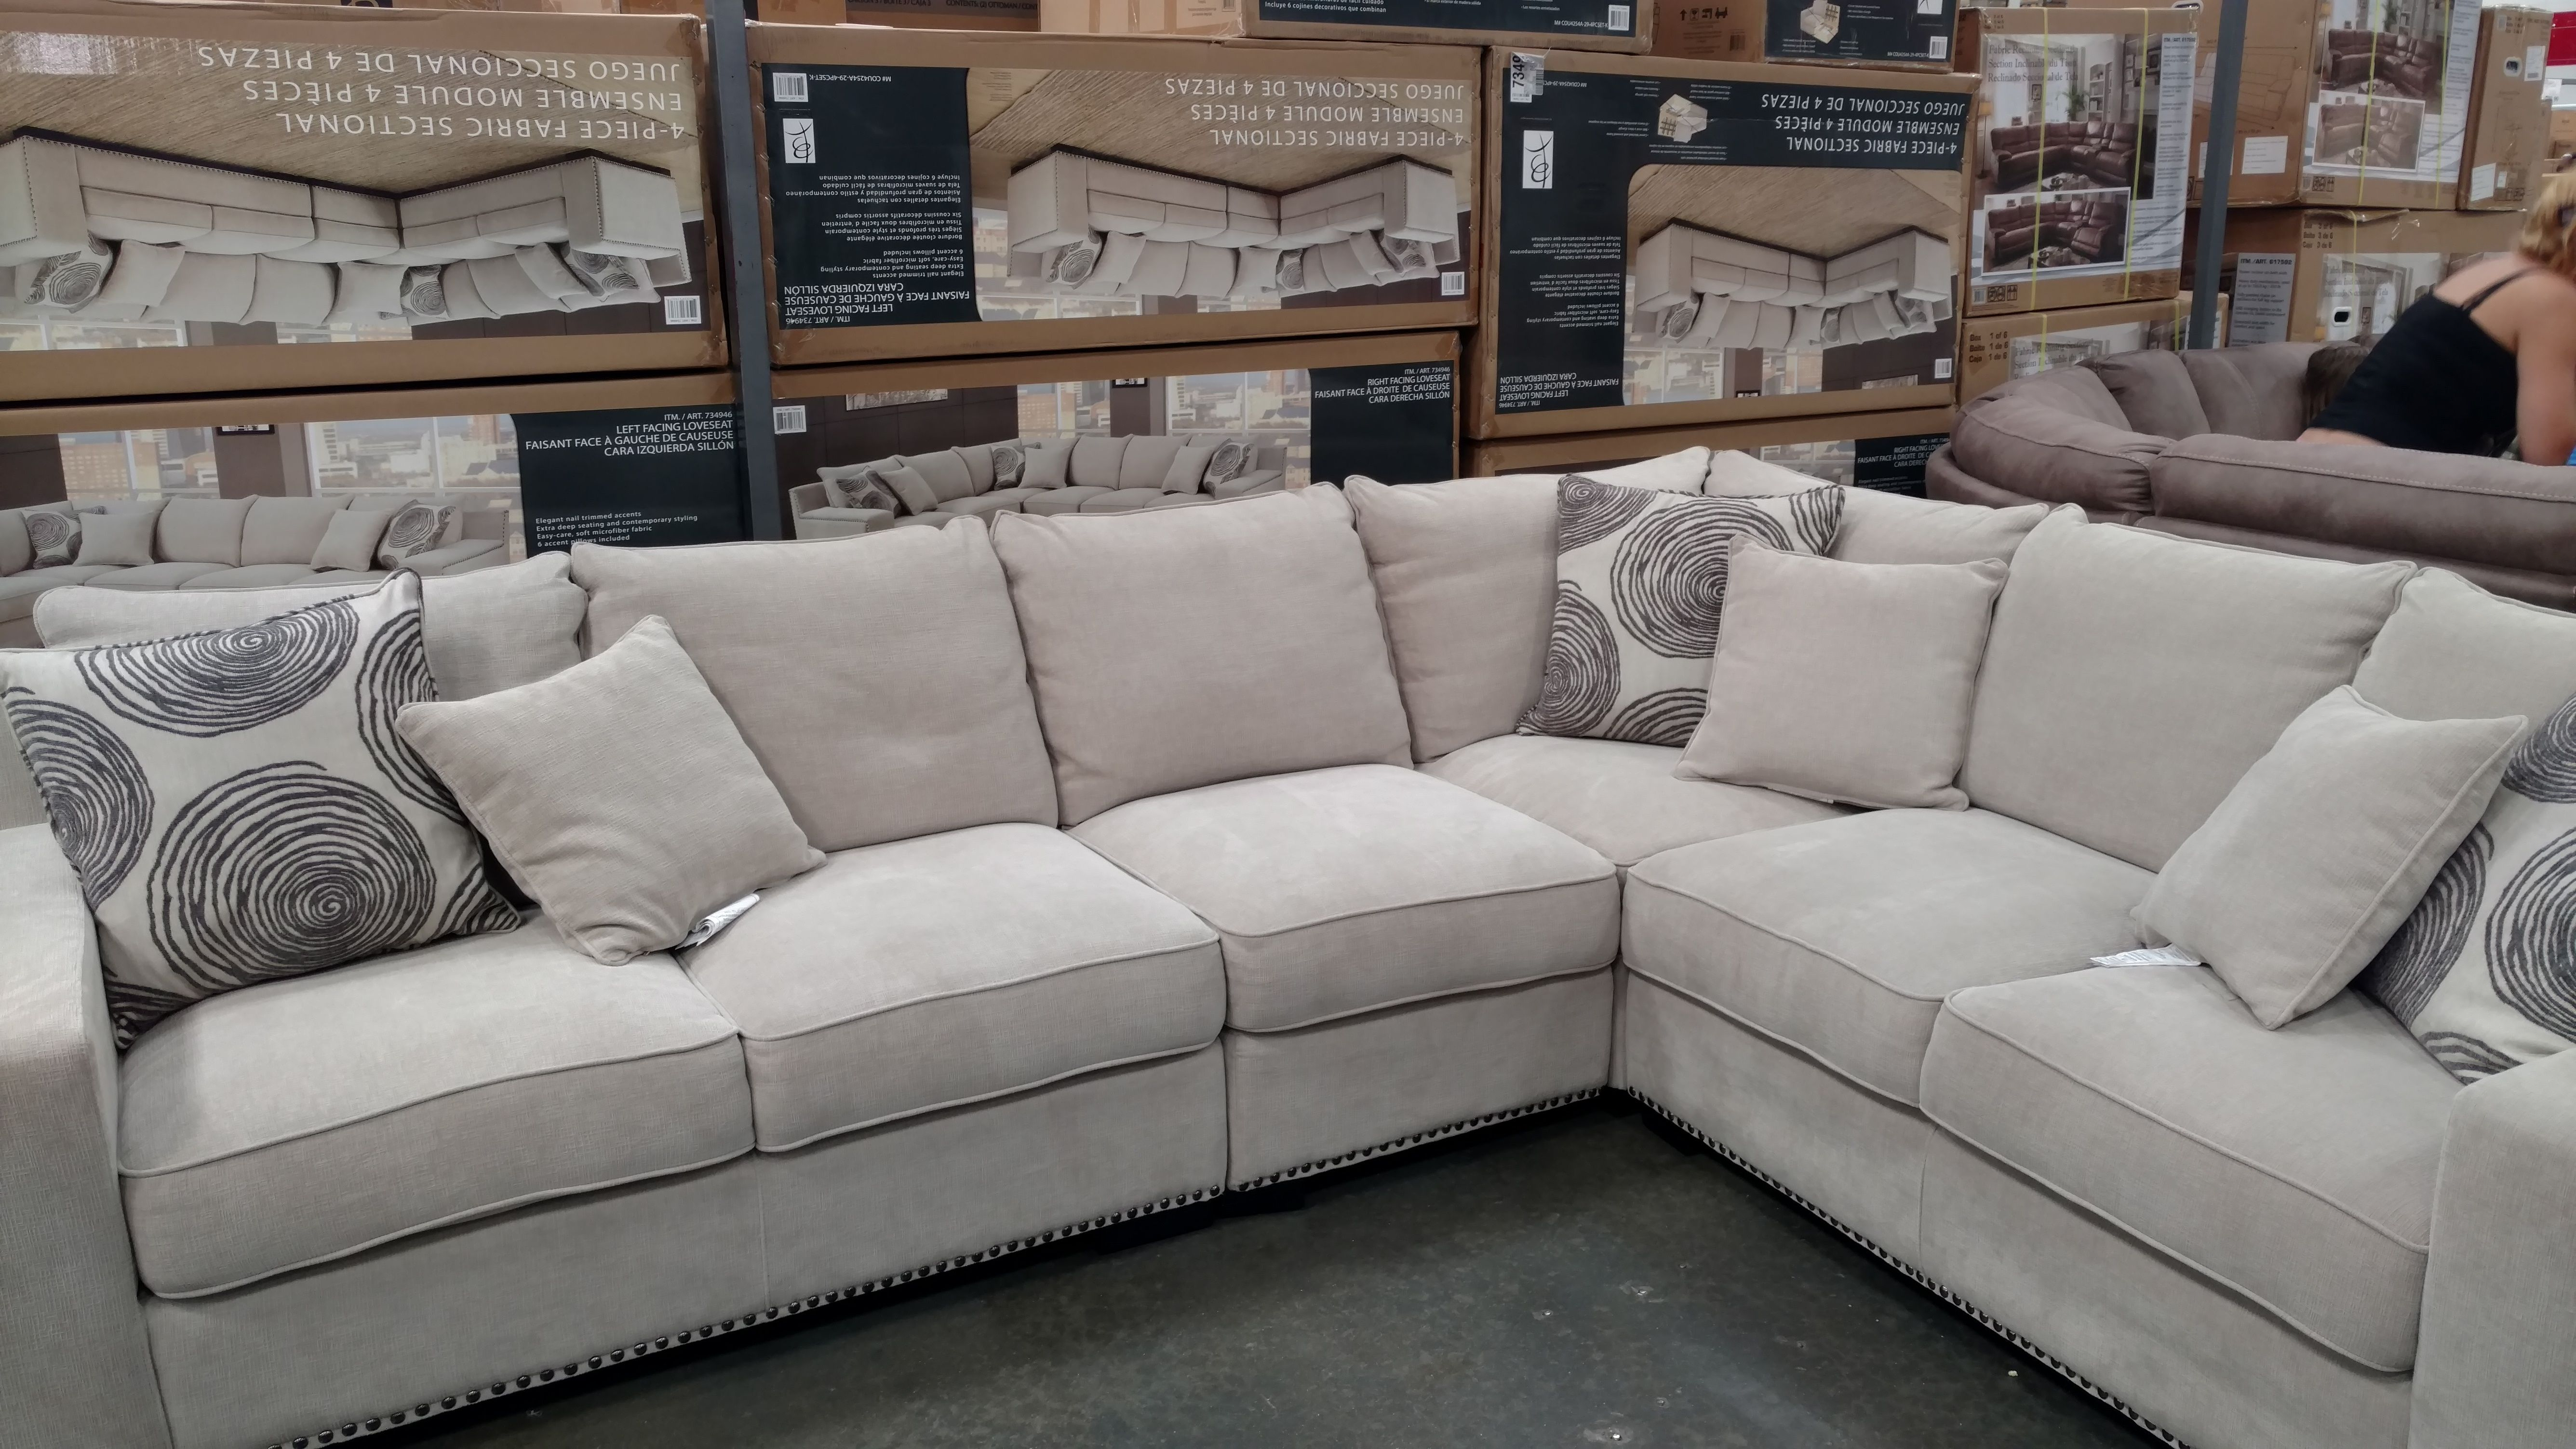 Awesome Couch From Costco Cool Couches Cute Bedroom Decor Costco Couch